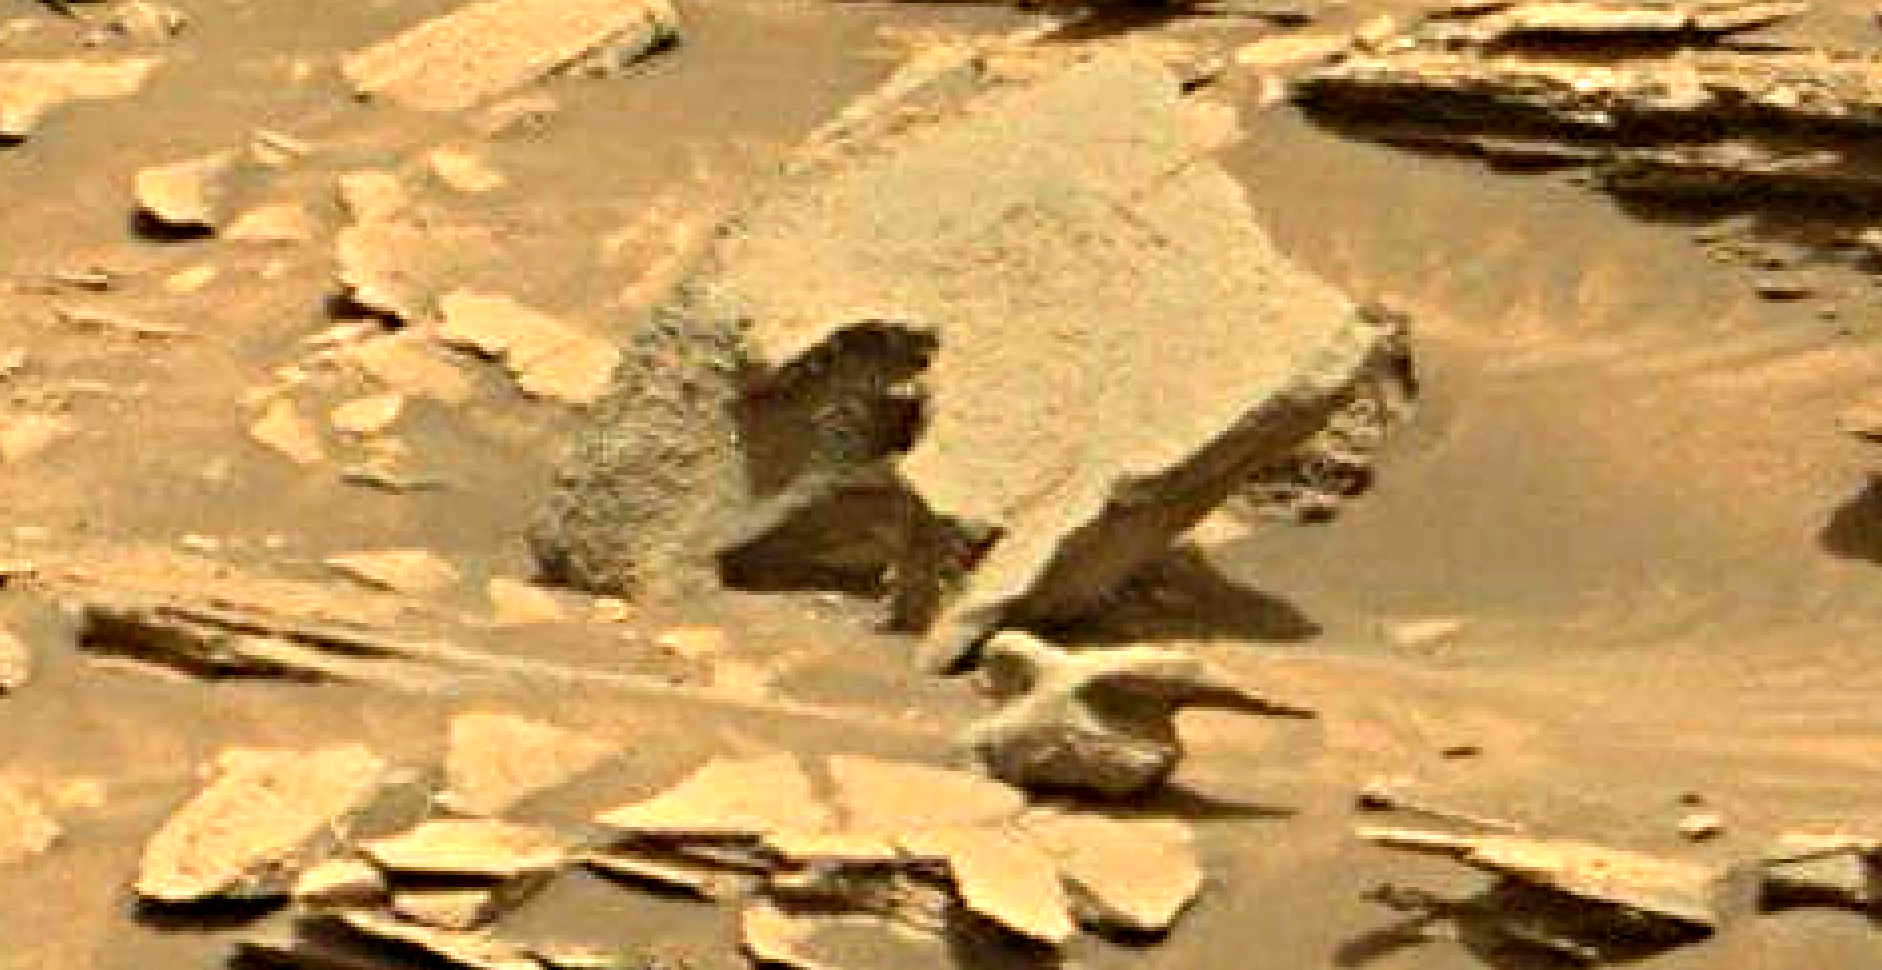 mars-sol-1450-anomaly-artifacts-1-was-life-on-mars